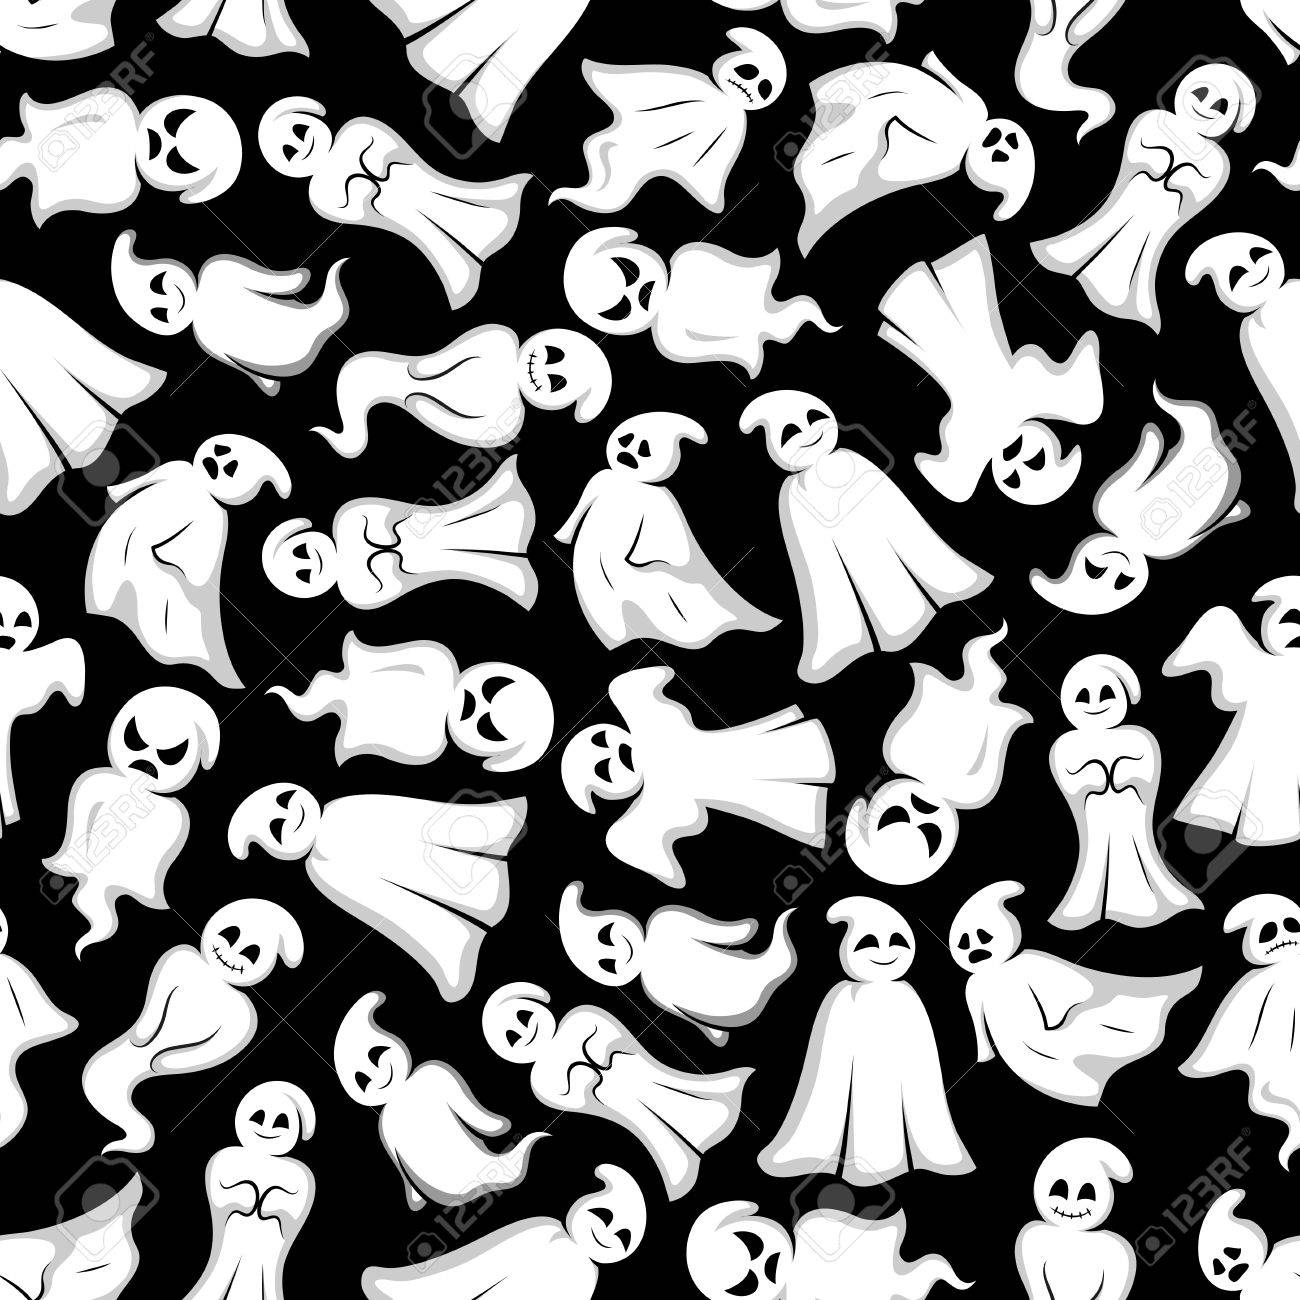 Halloween Background White Ghosts Seamless Pattern Wallpaper Royalty Free Cliparts Vectors And Stock Illustration Image 60304739